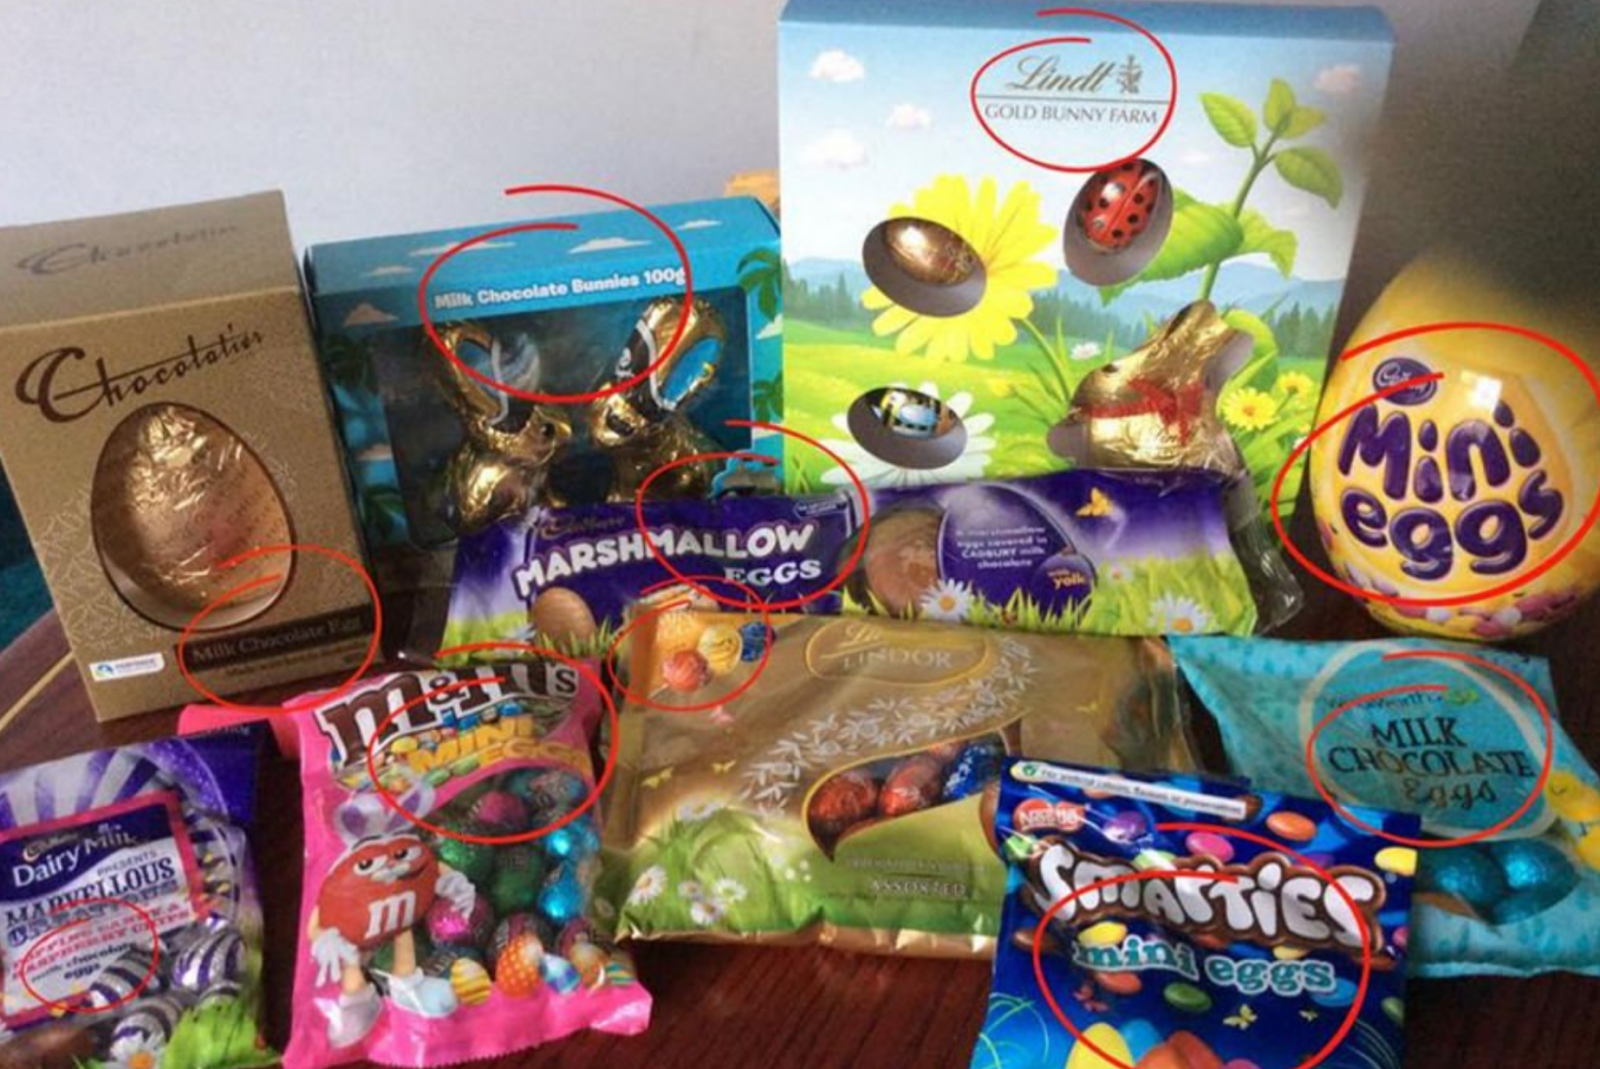 Easter eggs rarely have 'Easter' written on the box you insufferable twats